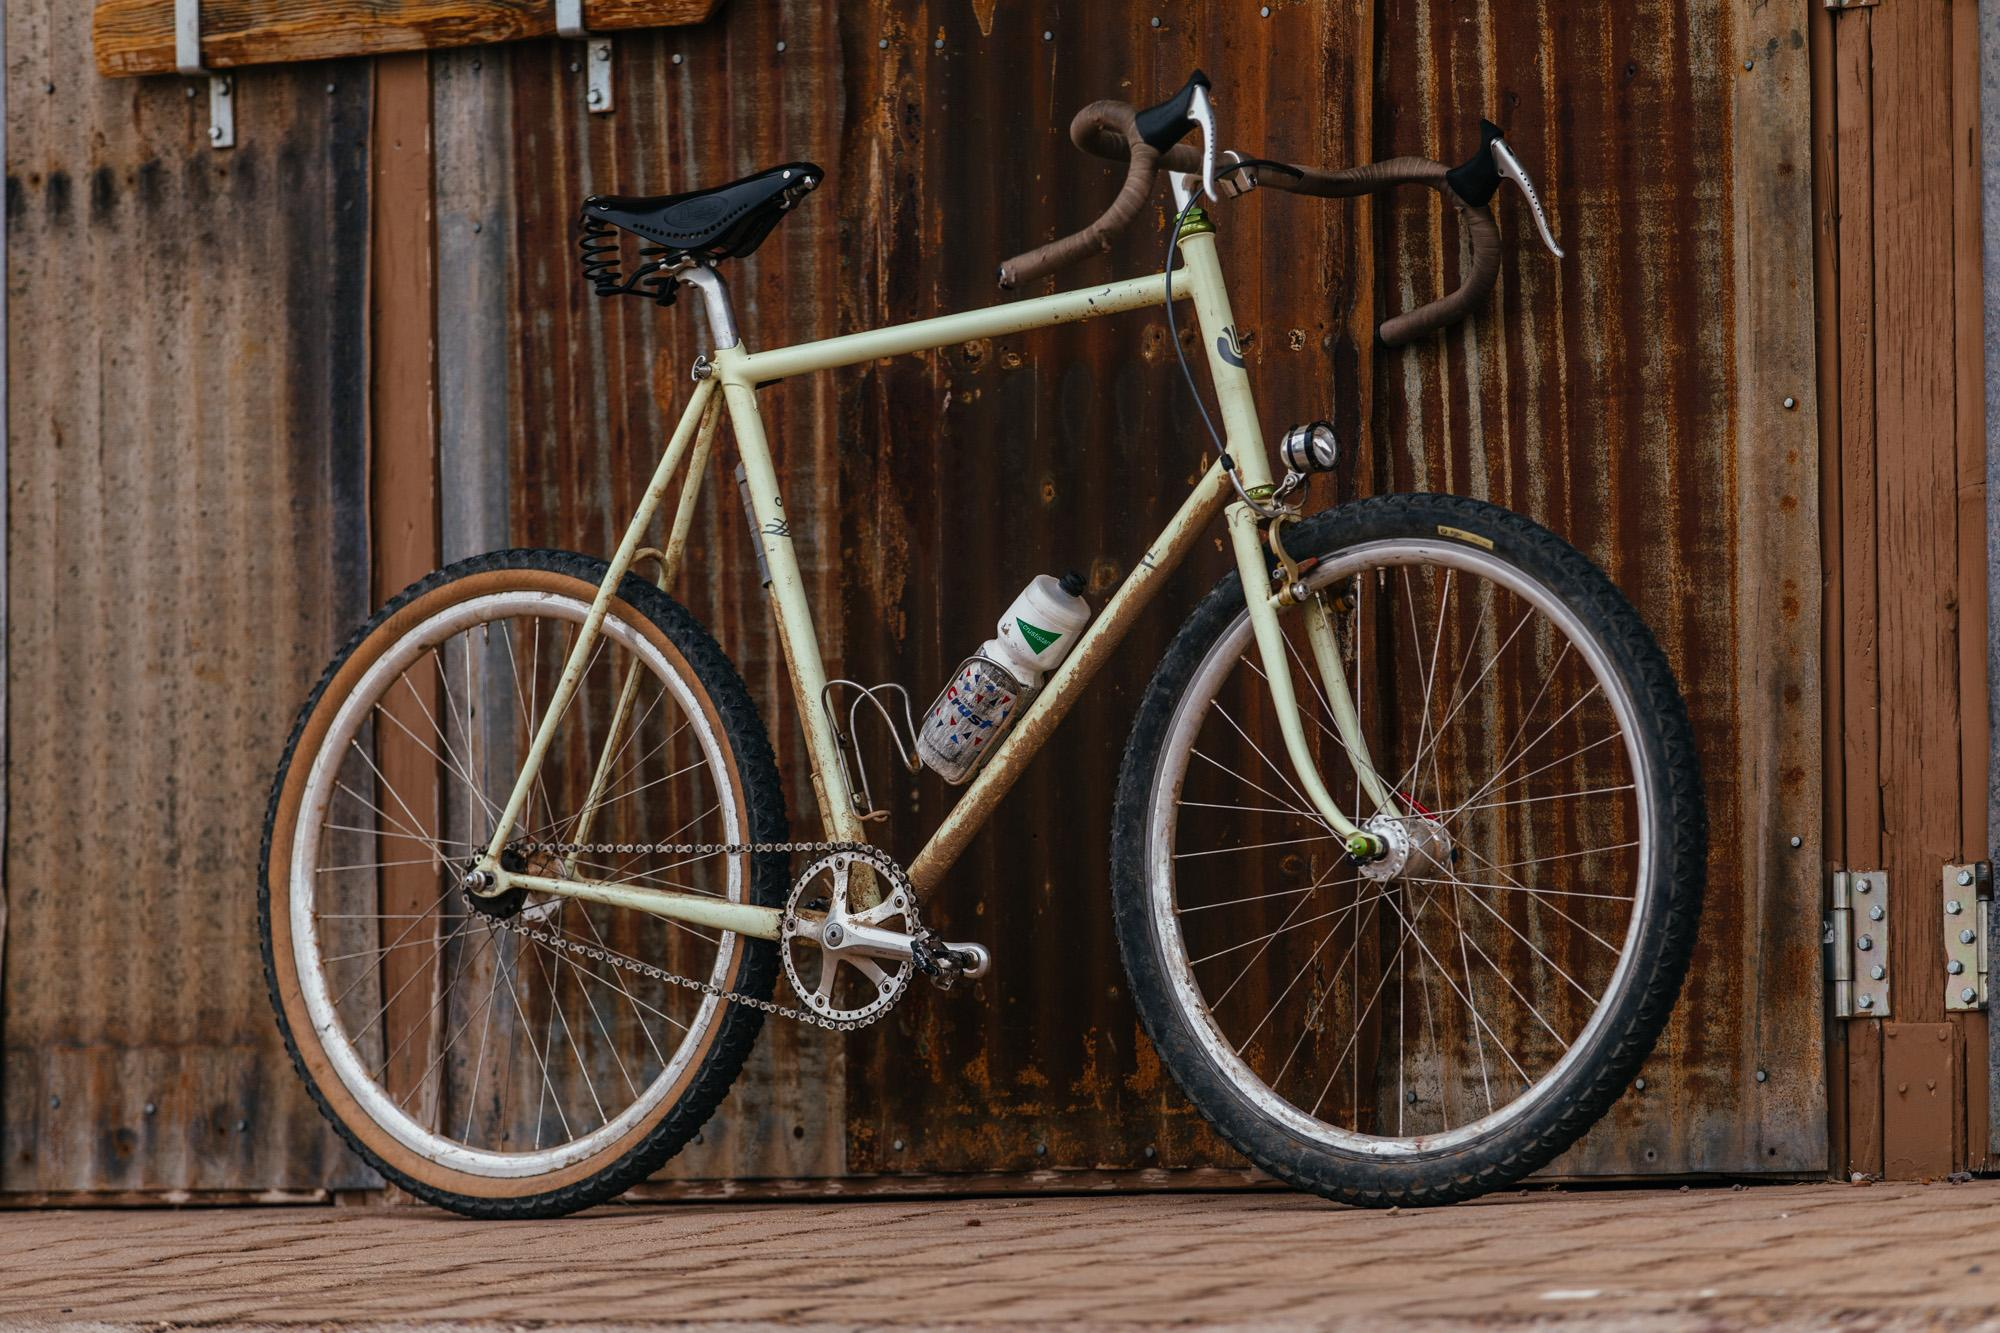 Ronnie Romance's Madrean Ultradynamico Country Fixed